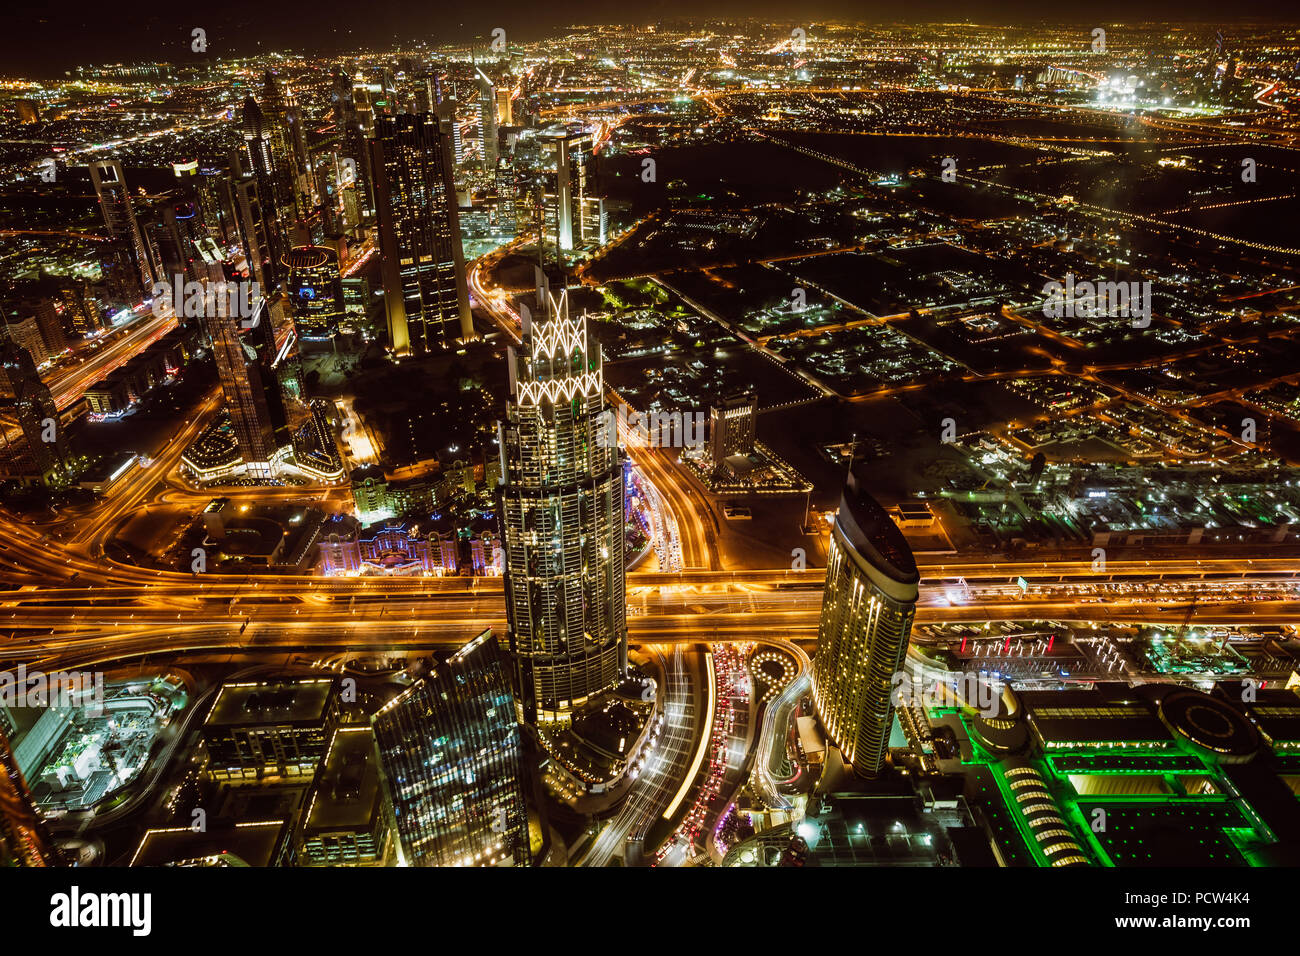 Aerial view of downtown Dubai and skyscrapers at night from the top of Burj Khalifa - Stock Image